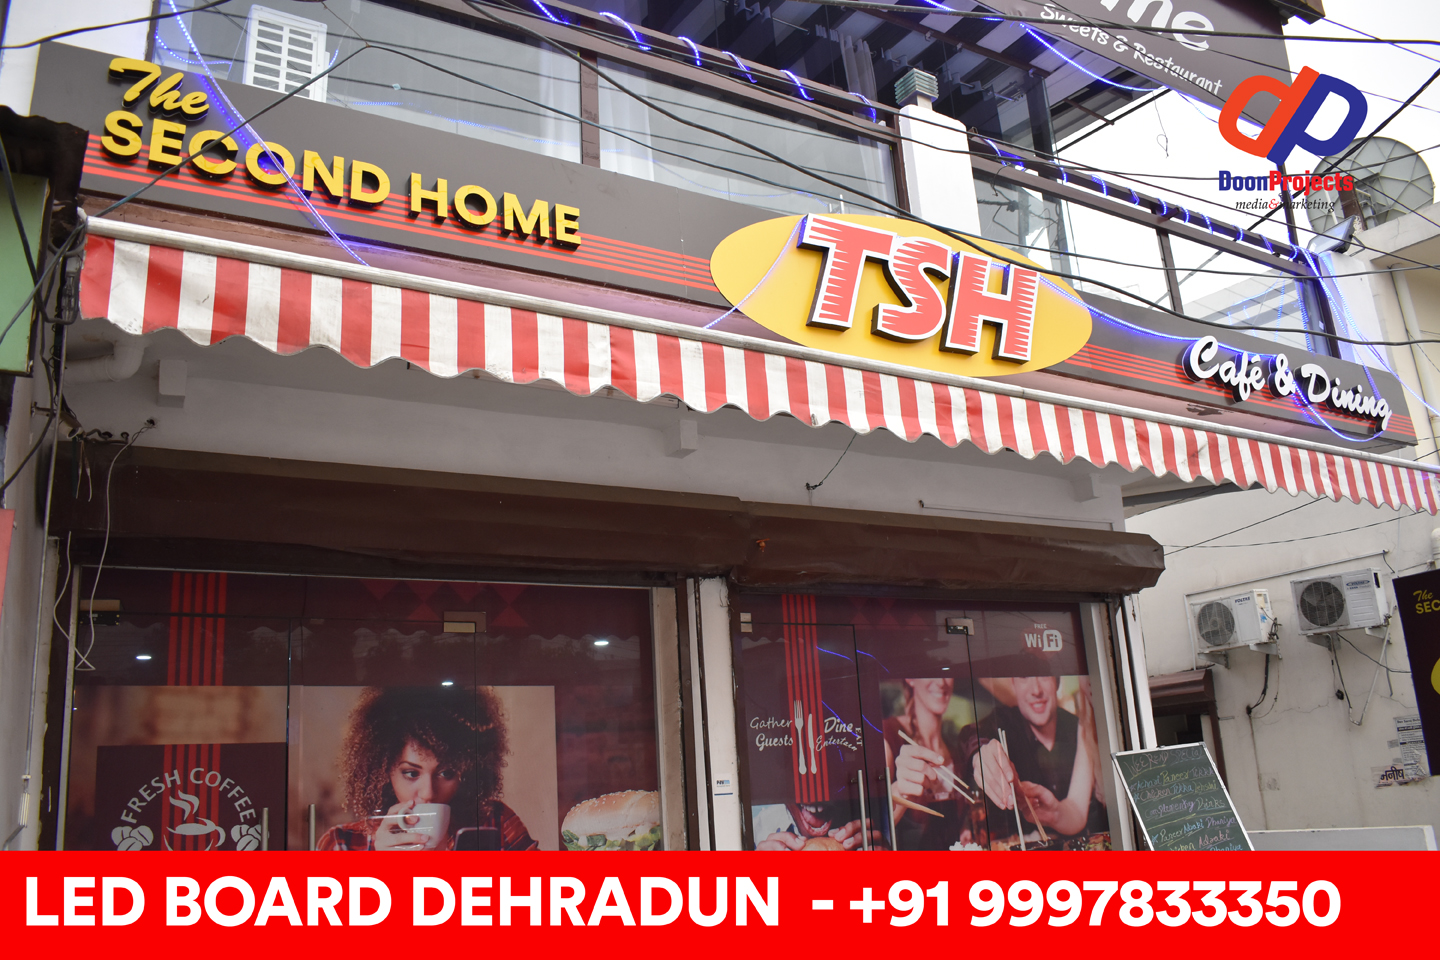 LED Board Designed for The Second Home - New Cantt. Road, Dehradun